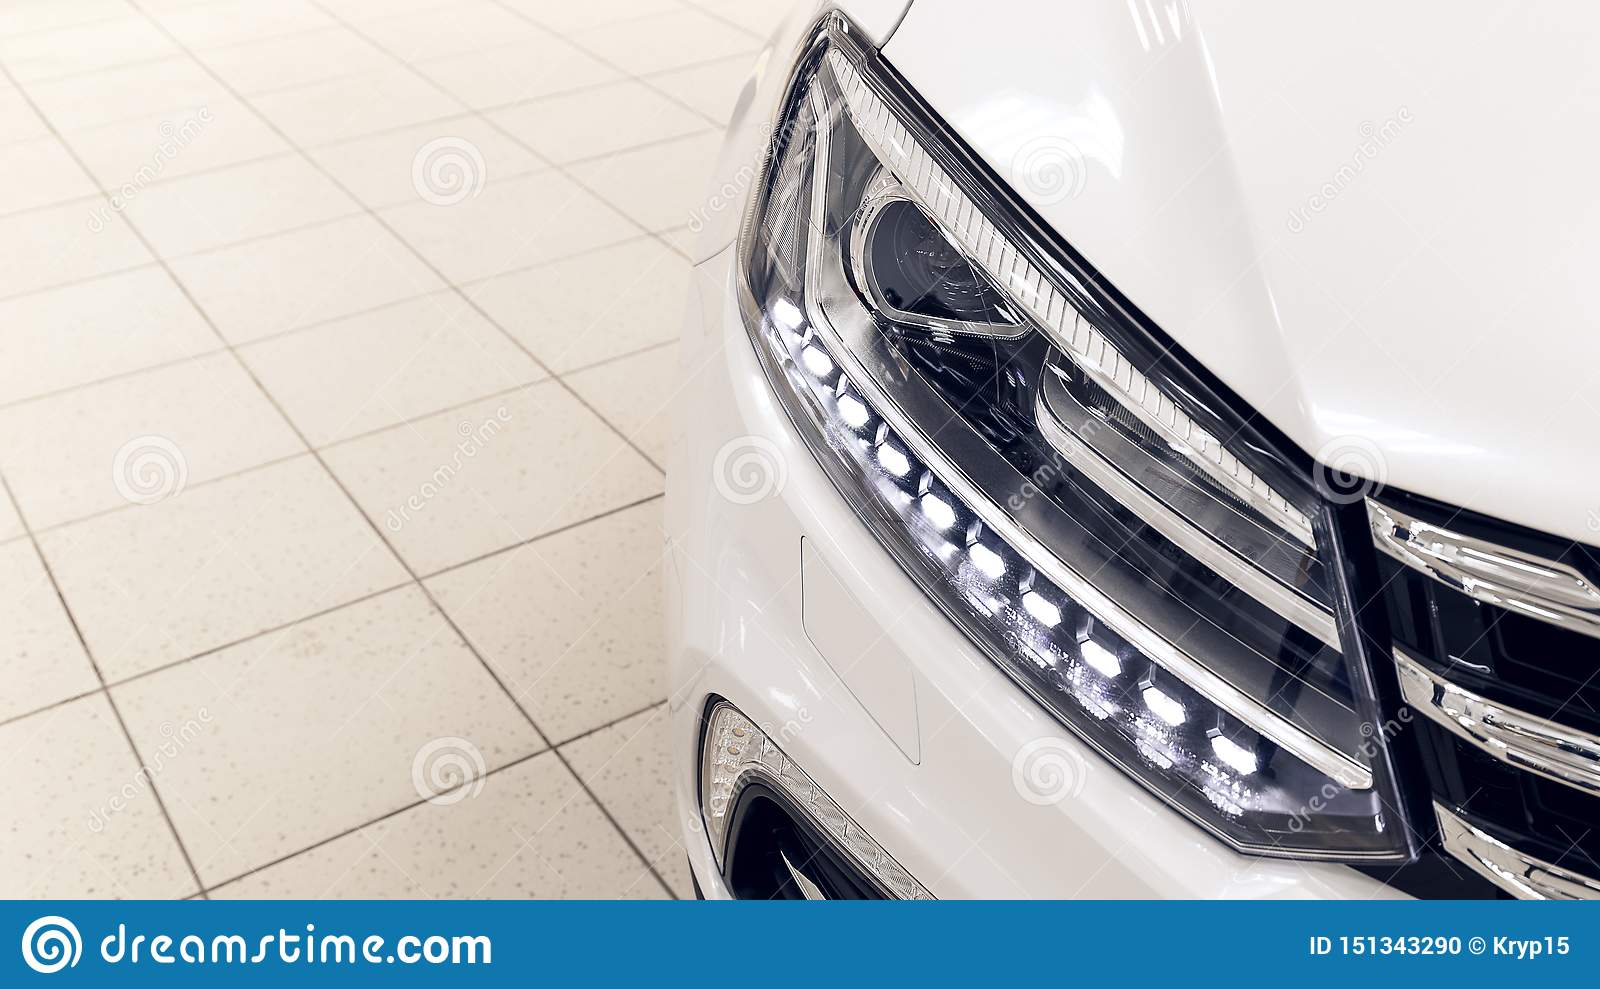 The front lights of the modern white car with LEDs. The car is in the showroom on a sunny day